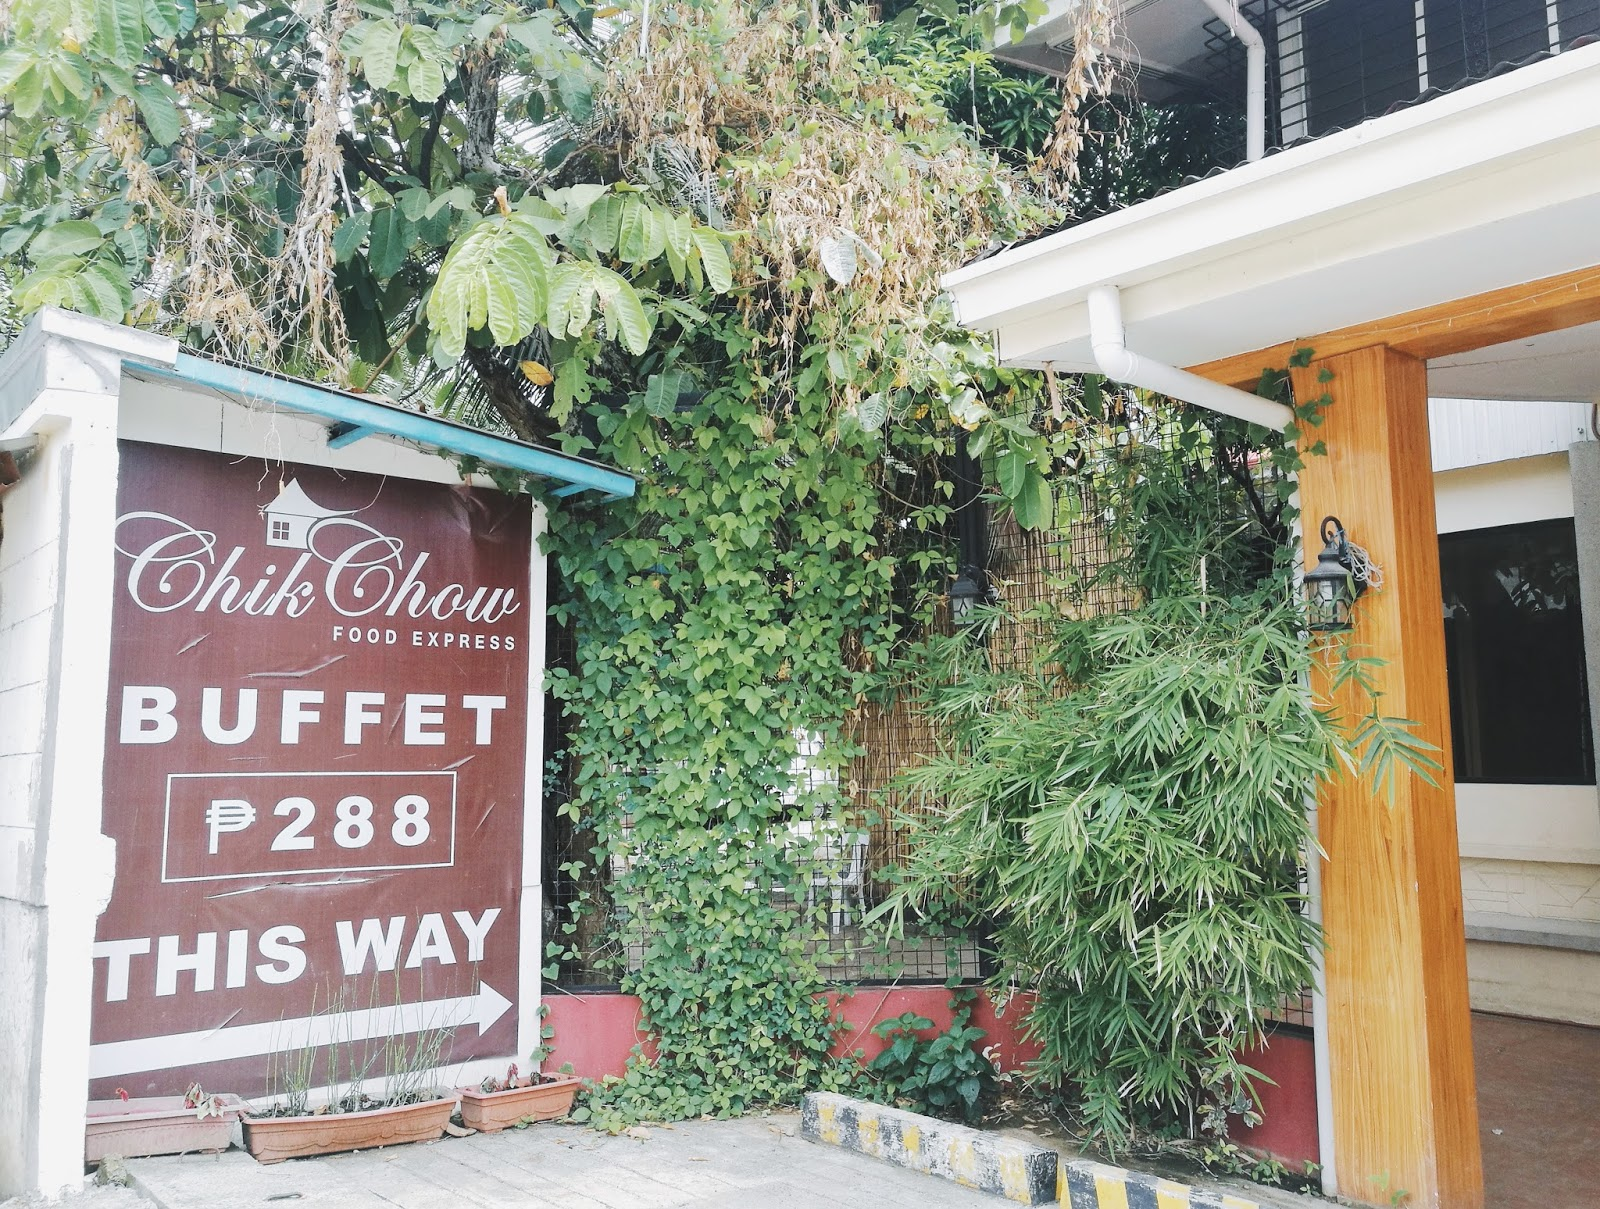 Affordable Buffet Dining at Chik Chow Food Express